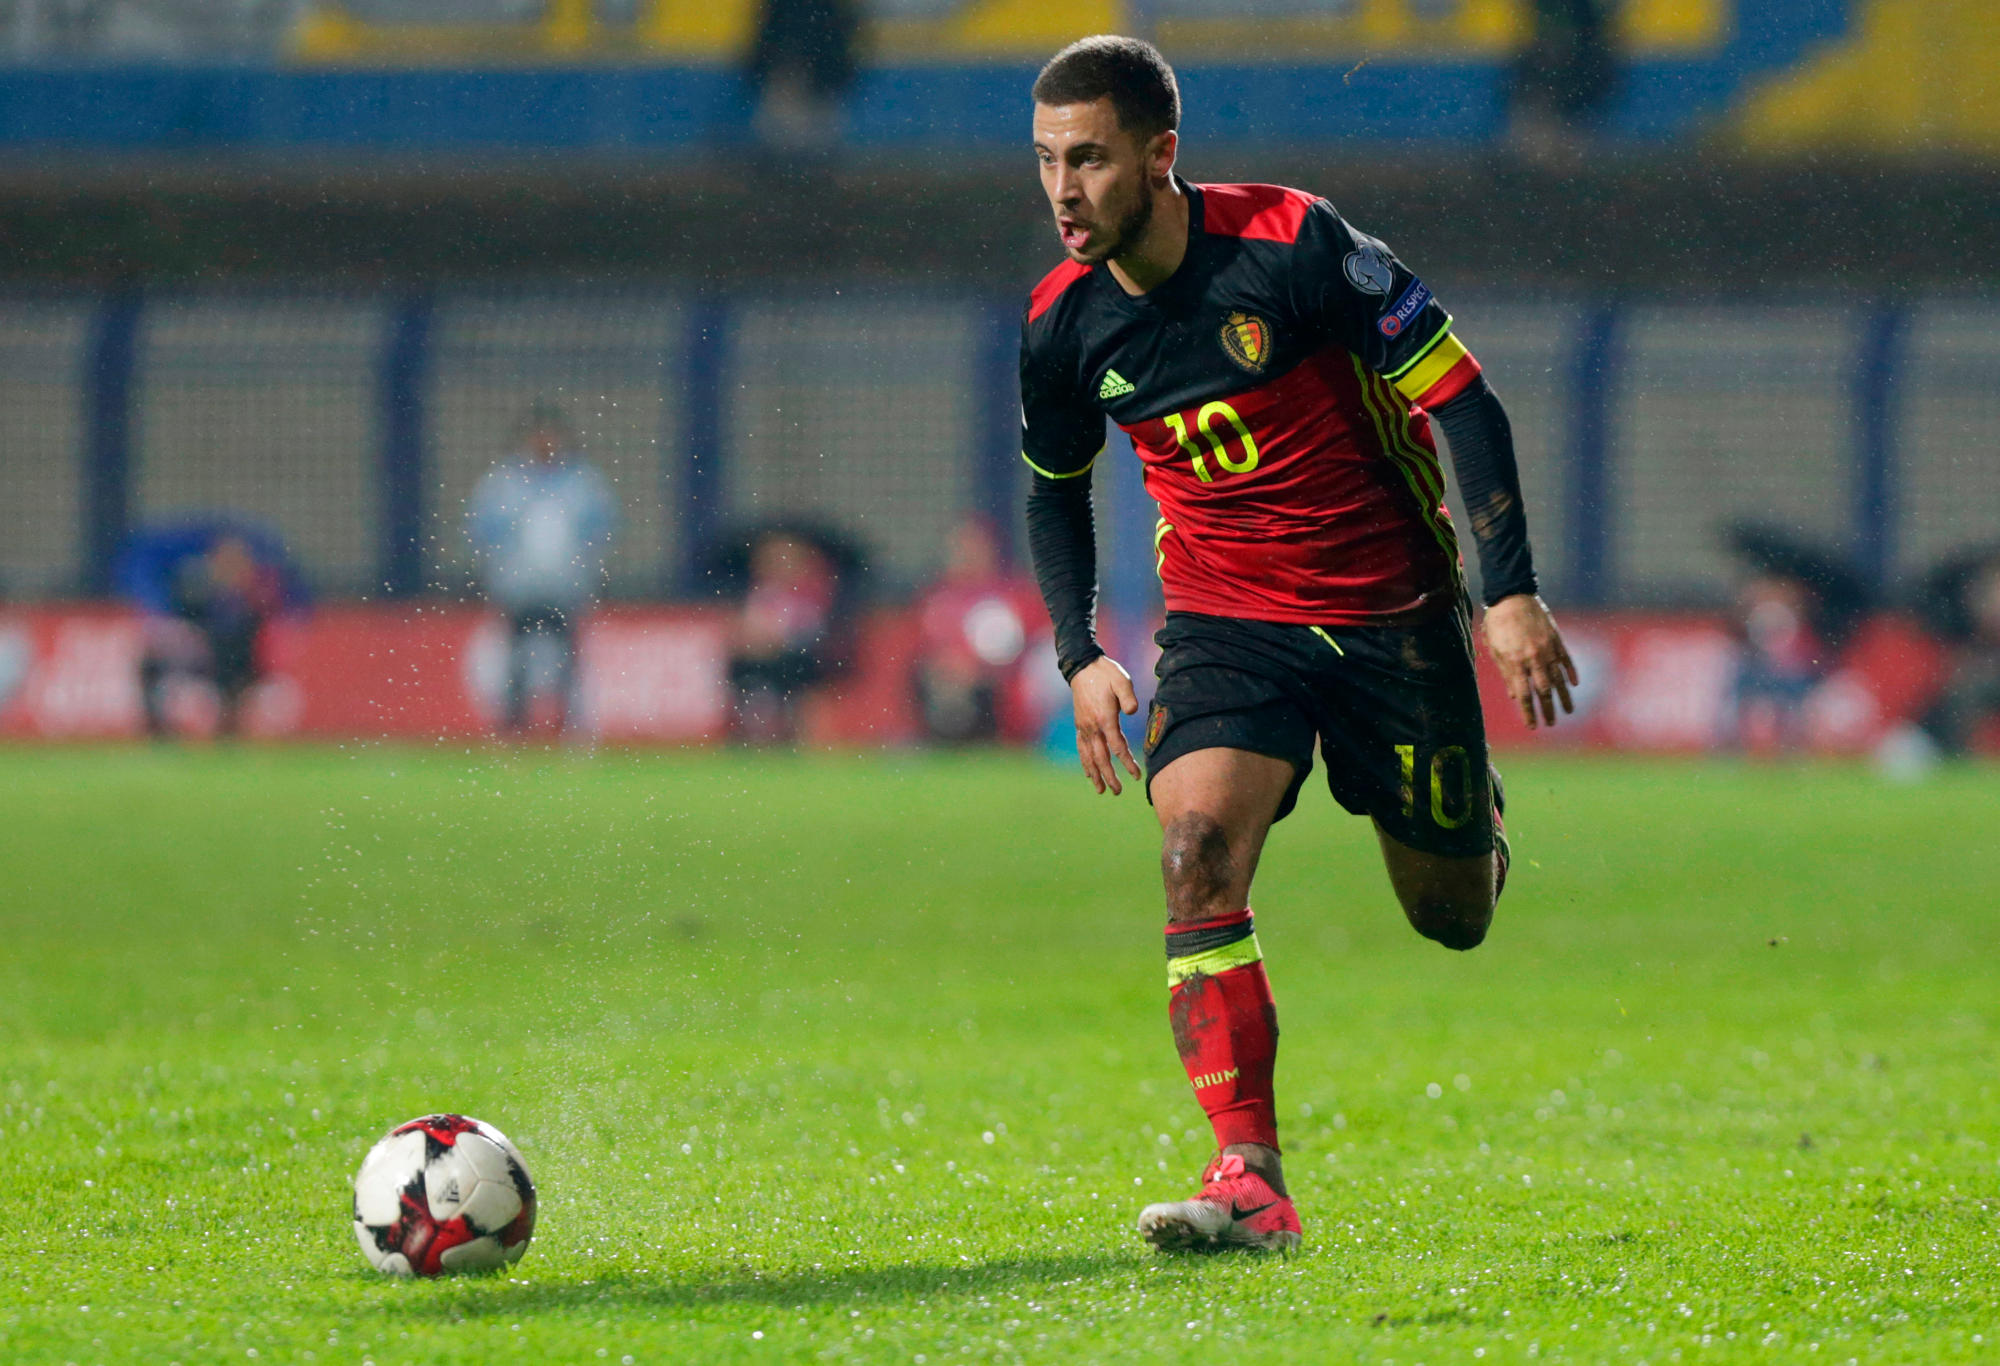 Belgium's Eden Hazard controls the ball during the World Cup Group H qualifying soccer match between Bosnia and Belgium at the Grbavica stadium in Sarajevo, Bosnia.